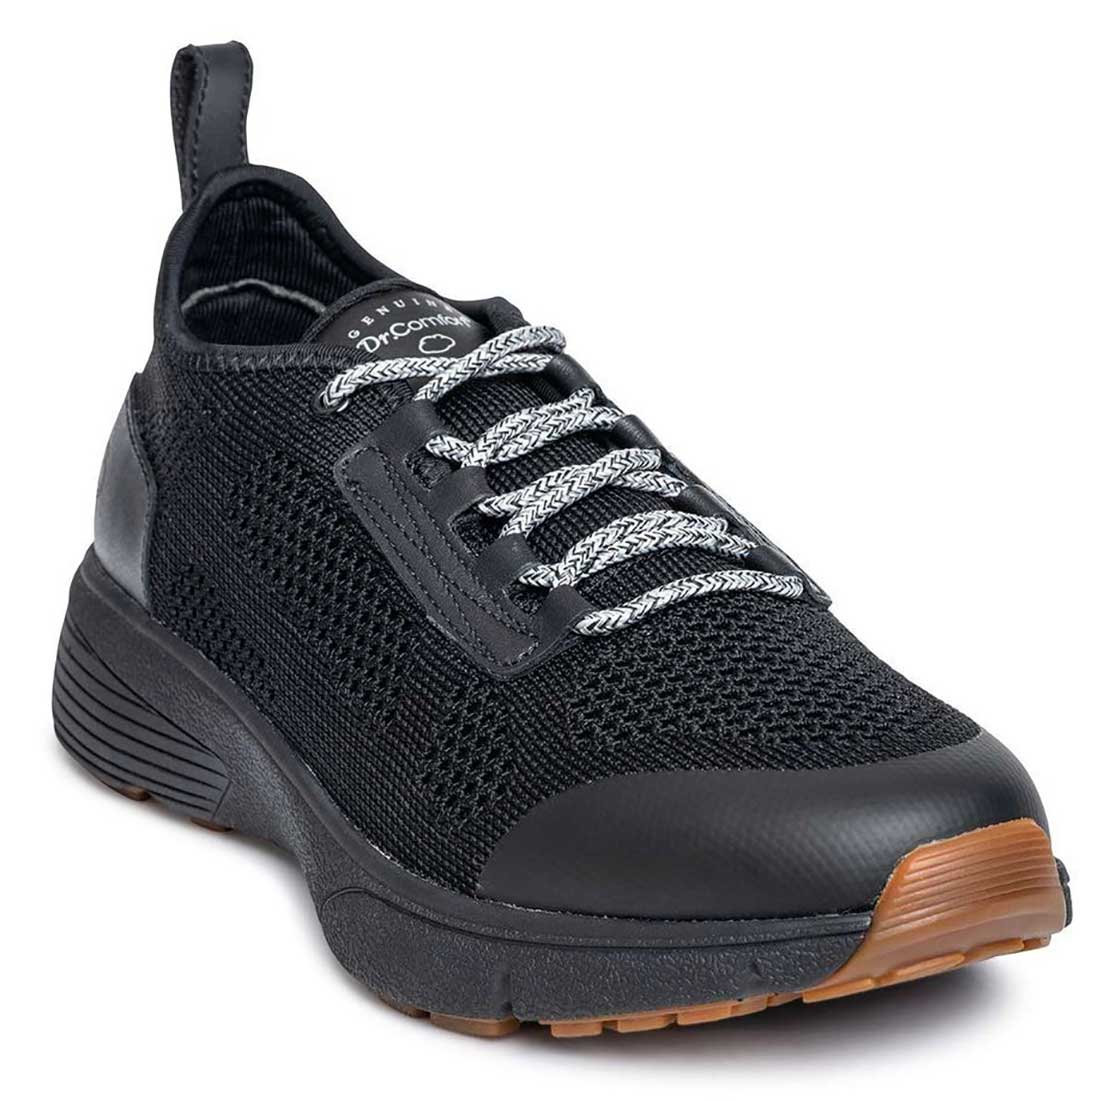 The Dr. Comfort Diane 10600 - Athletic